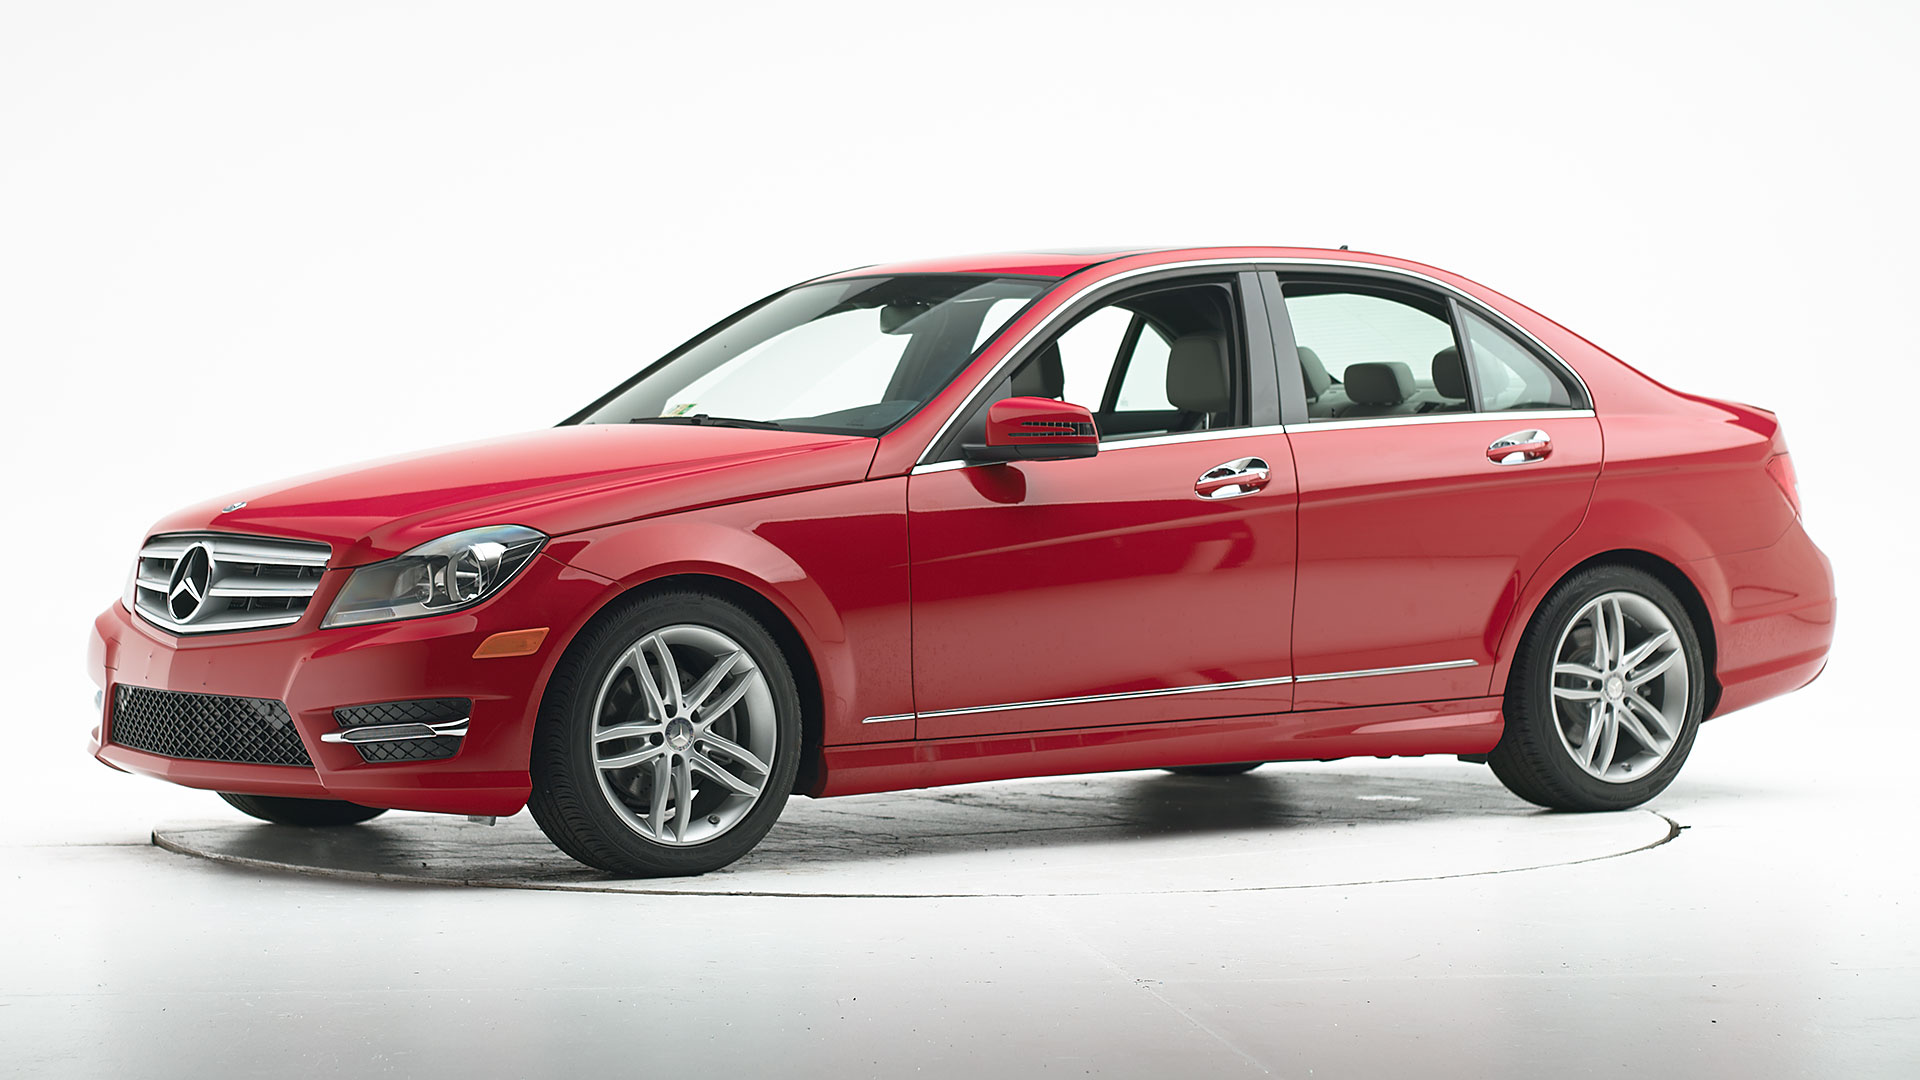 2013 Mercedes-Benz C-Class 4-door sedan